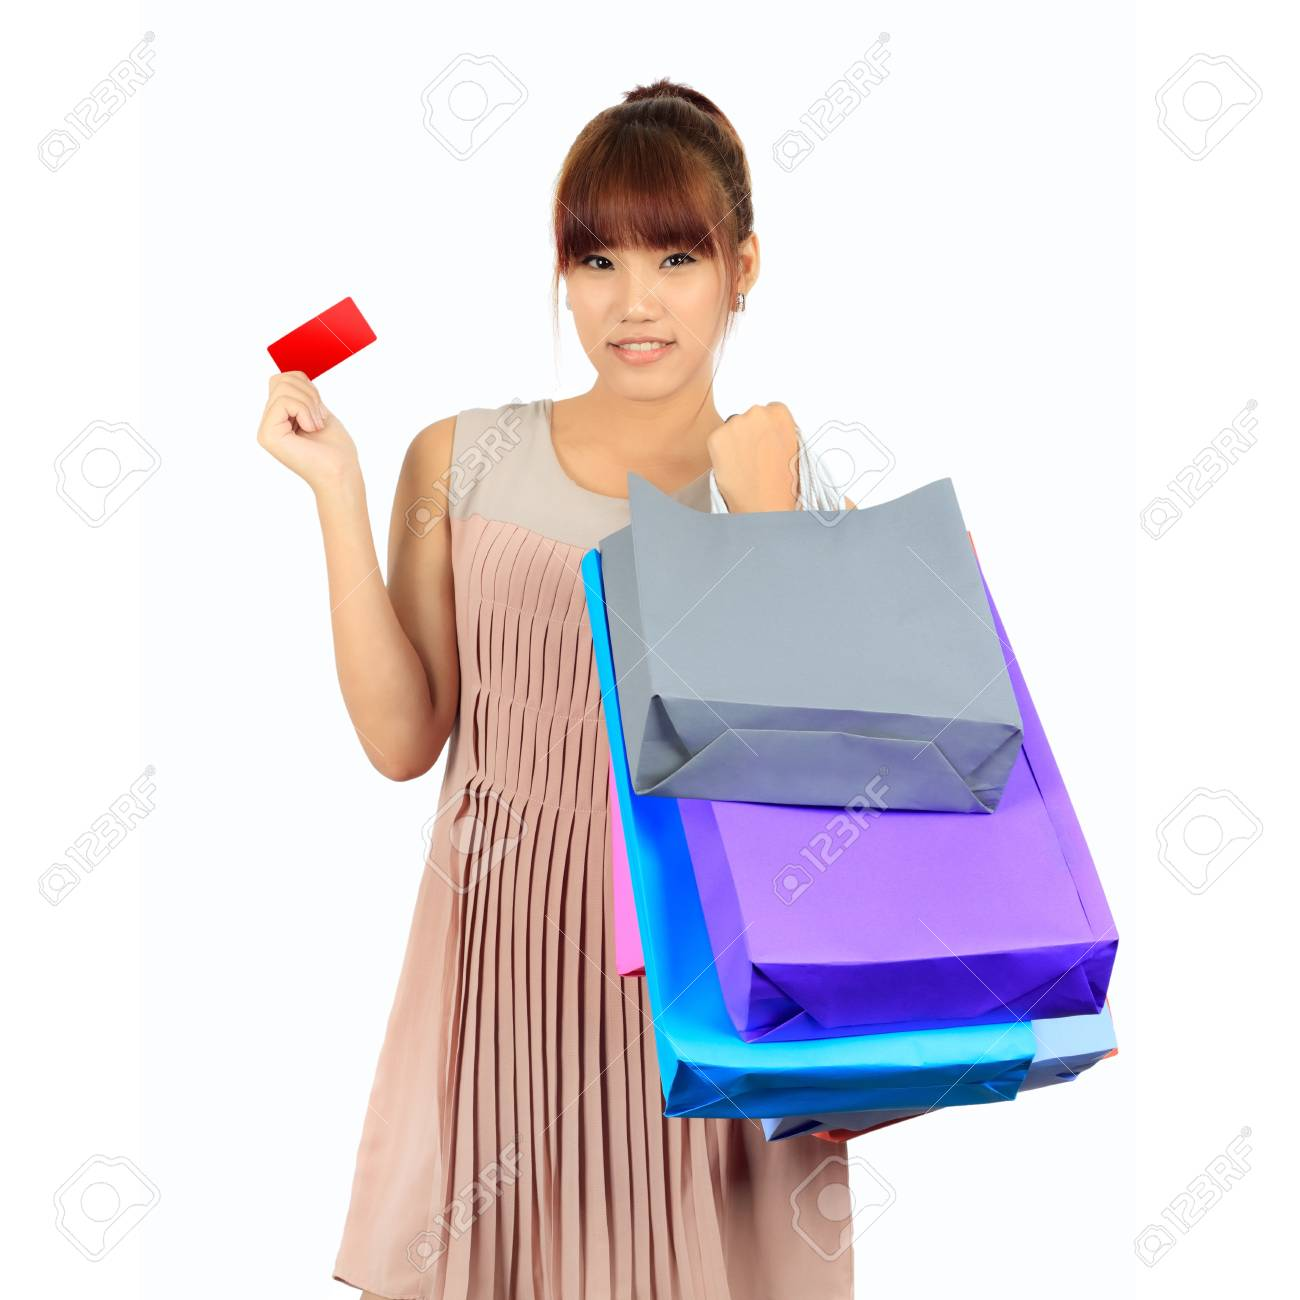 Isolated Yong Asian Woman With colorful Shopping Bags Stock Photo - 17500845